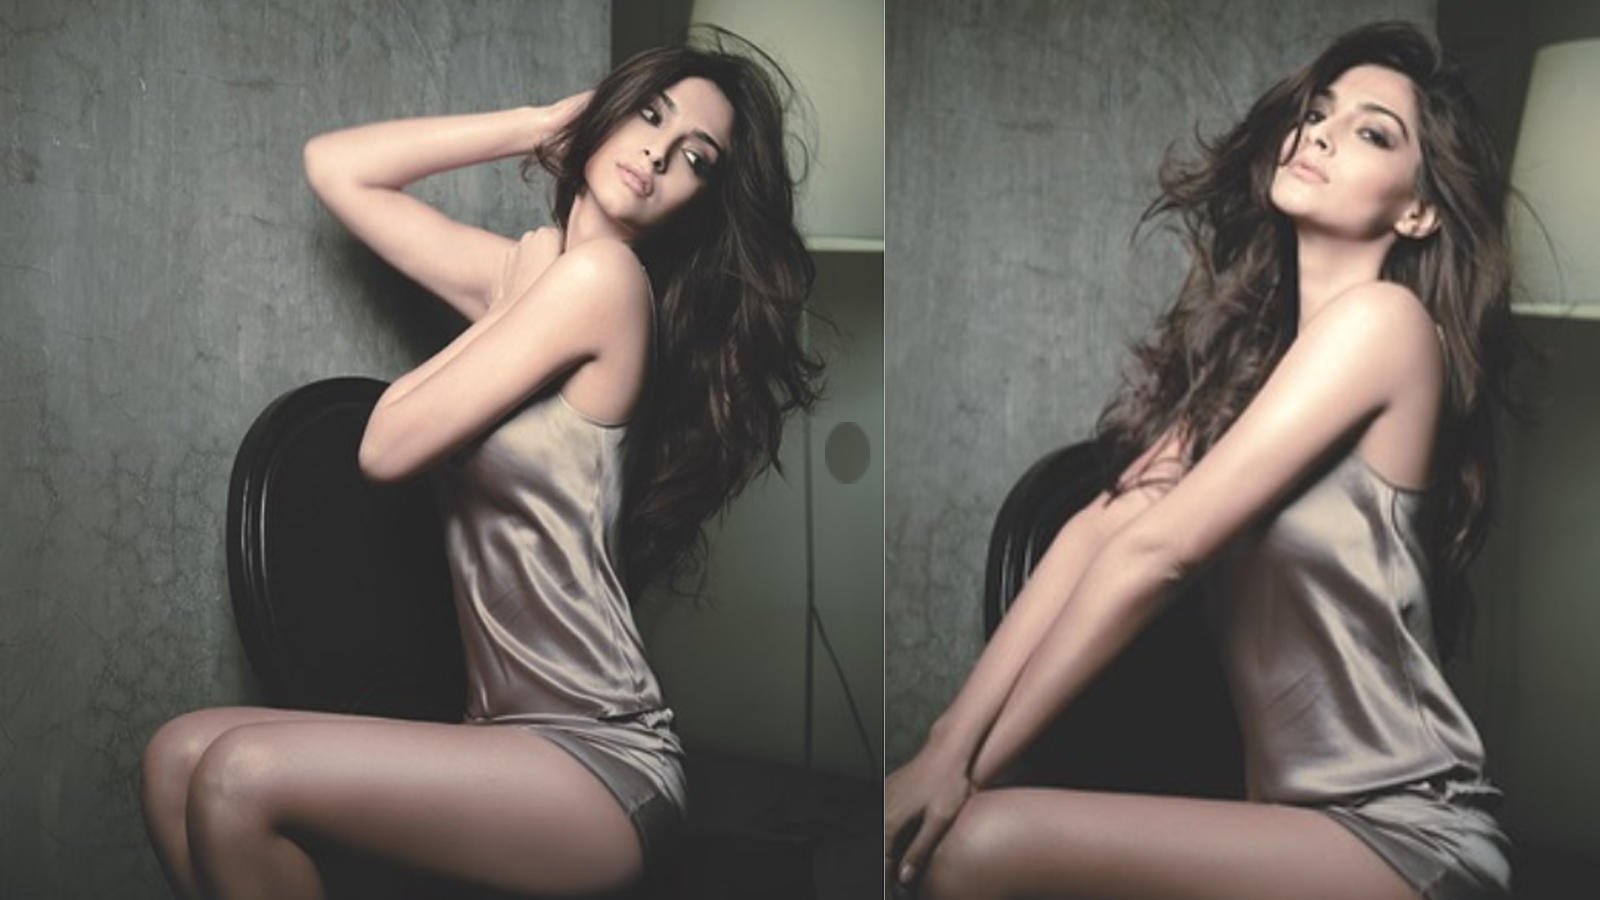 sonam-kapoor-shares-some-jaw-dropping-pictures-in-satin-nightwear-gets-compliments-from-anushka-sharma-maheep-kapoor